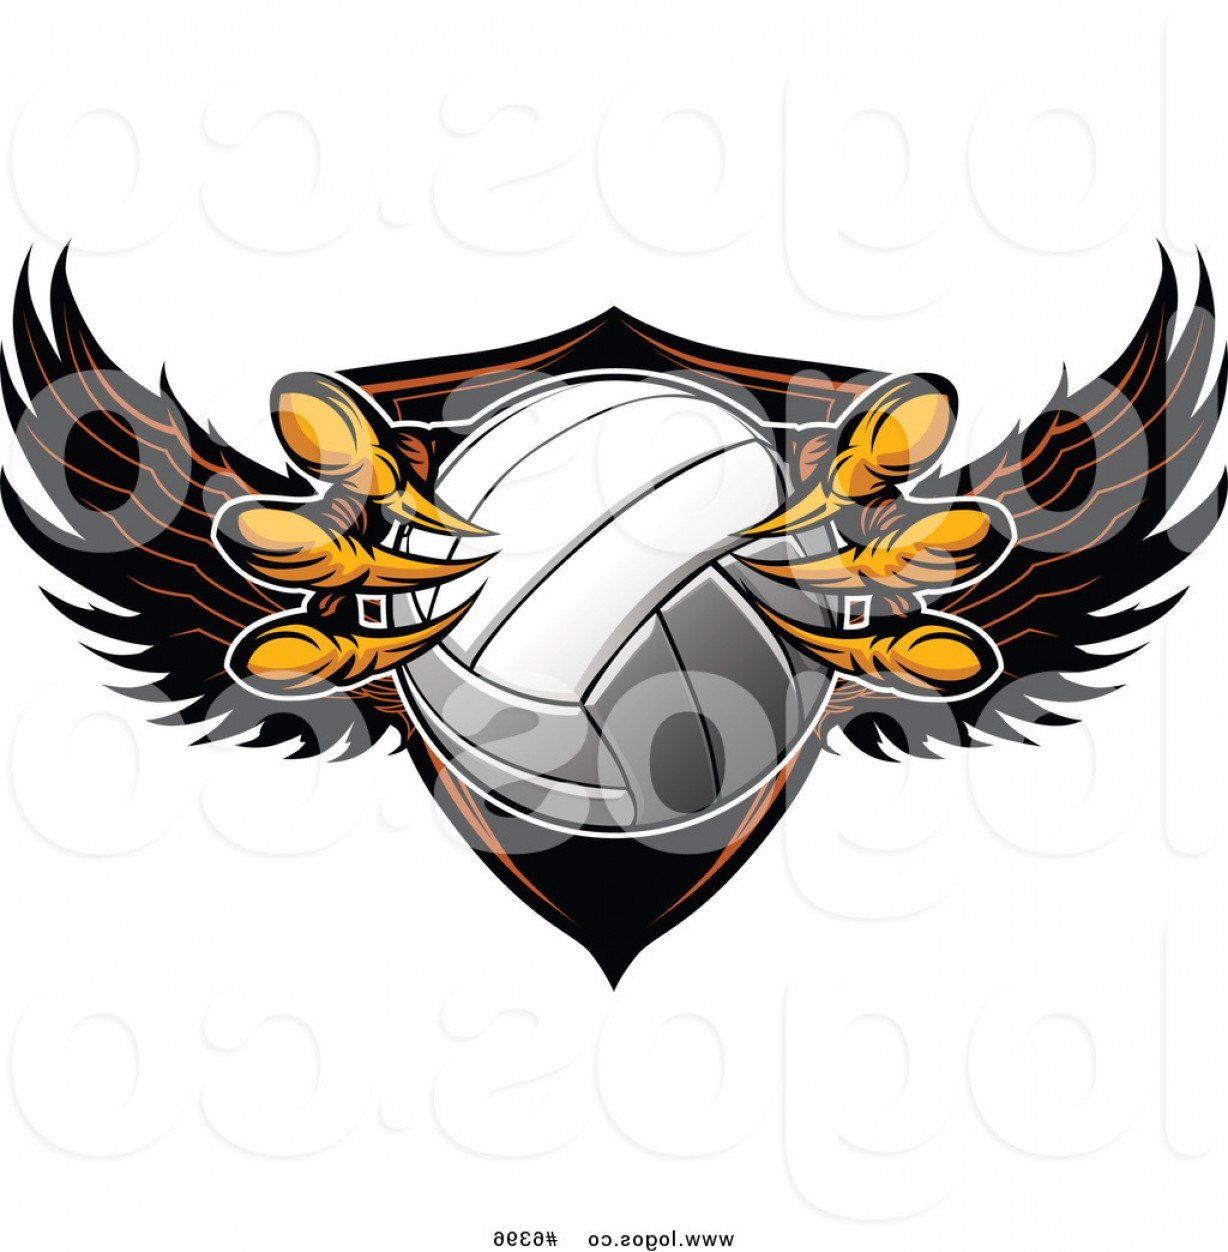 Volleyball Vector Logo: Royalty Free Clip Art Vector Logo Of A Shield And Eagle Talons Grabbing A Volleyball By Chromaco